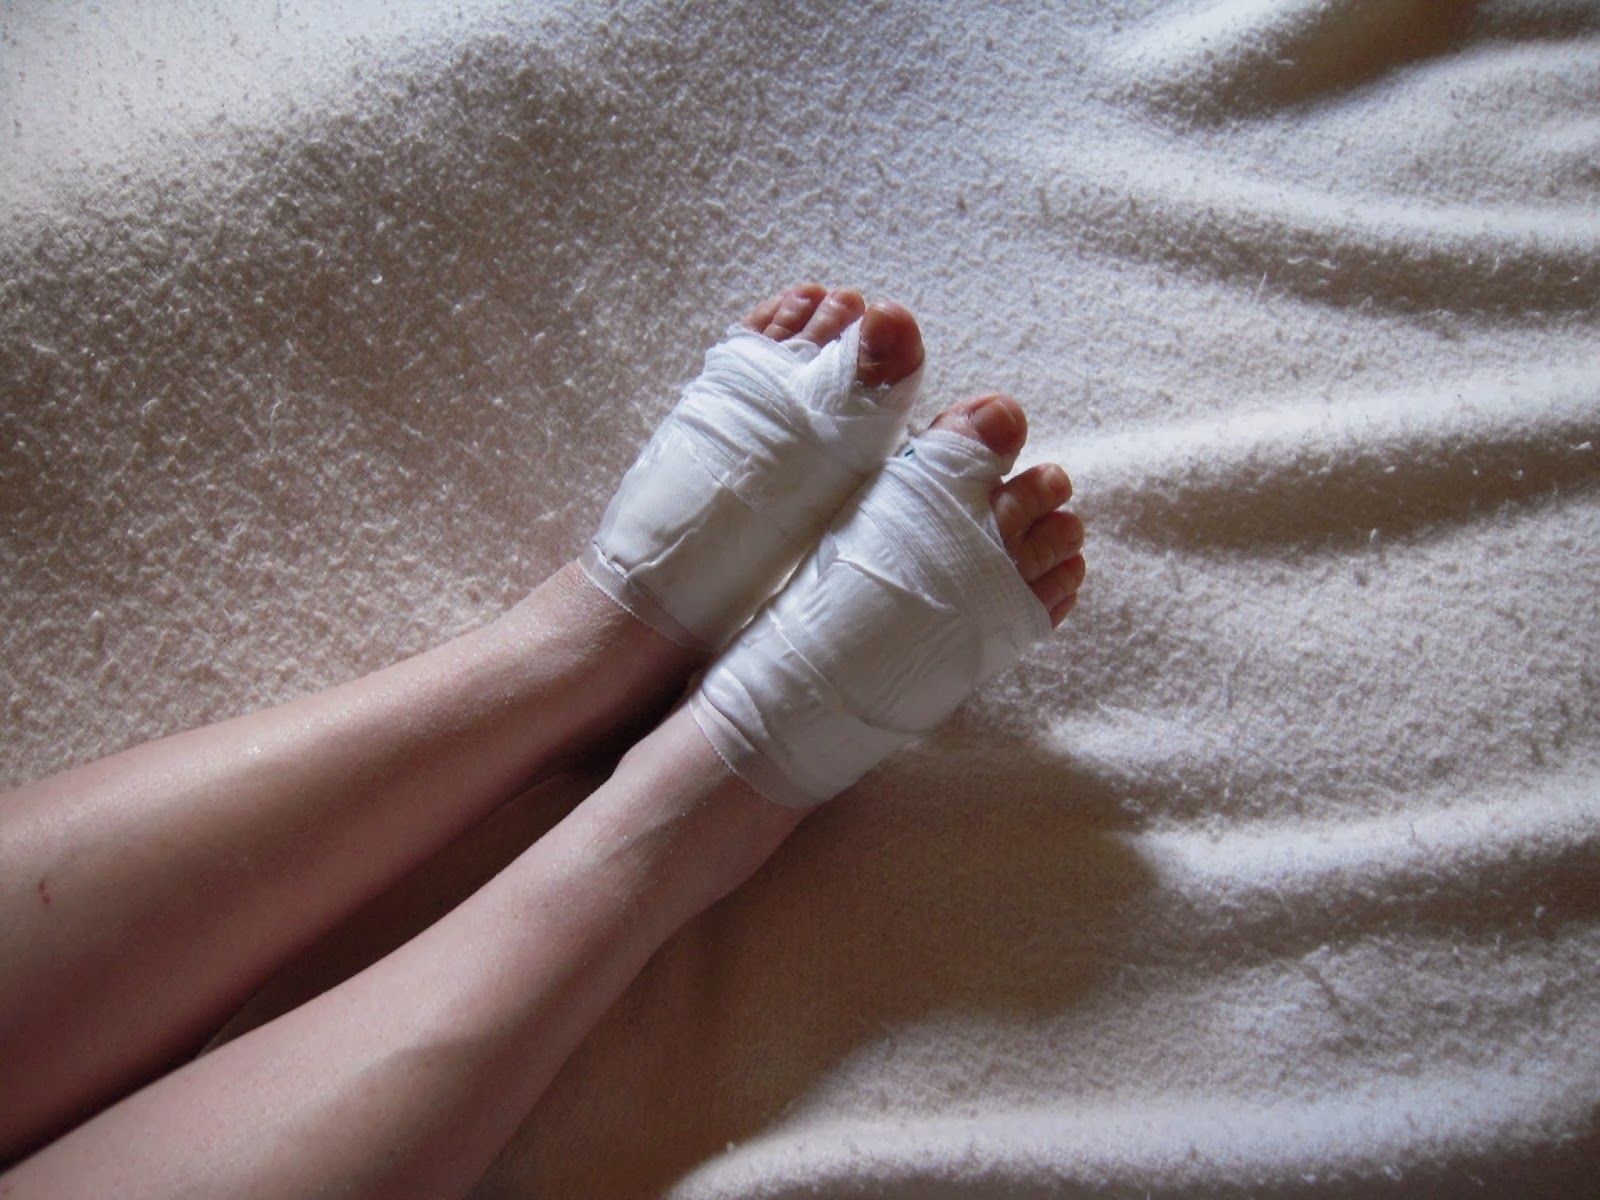 Houston podiatrist discusses bunion surgery on both feet